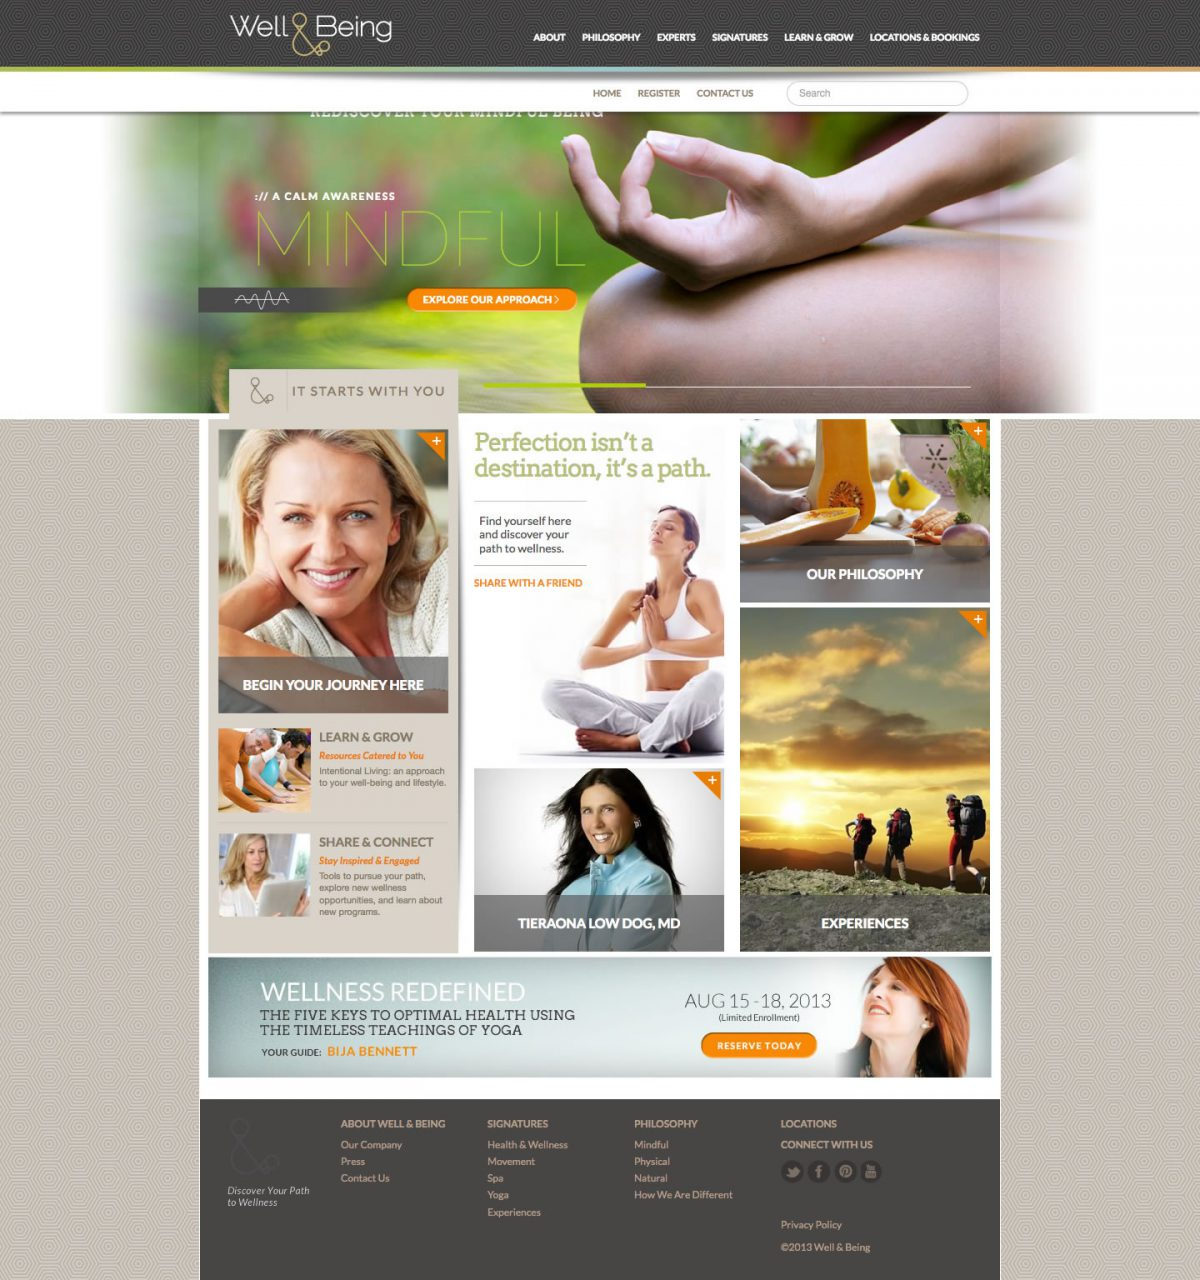 Well & Being Website design and Build